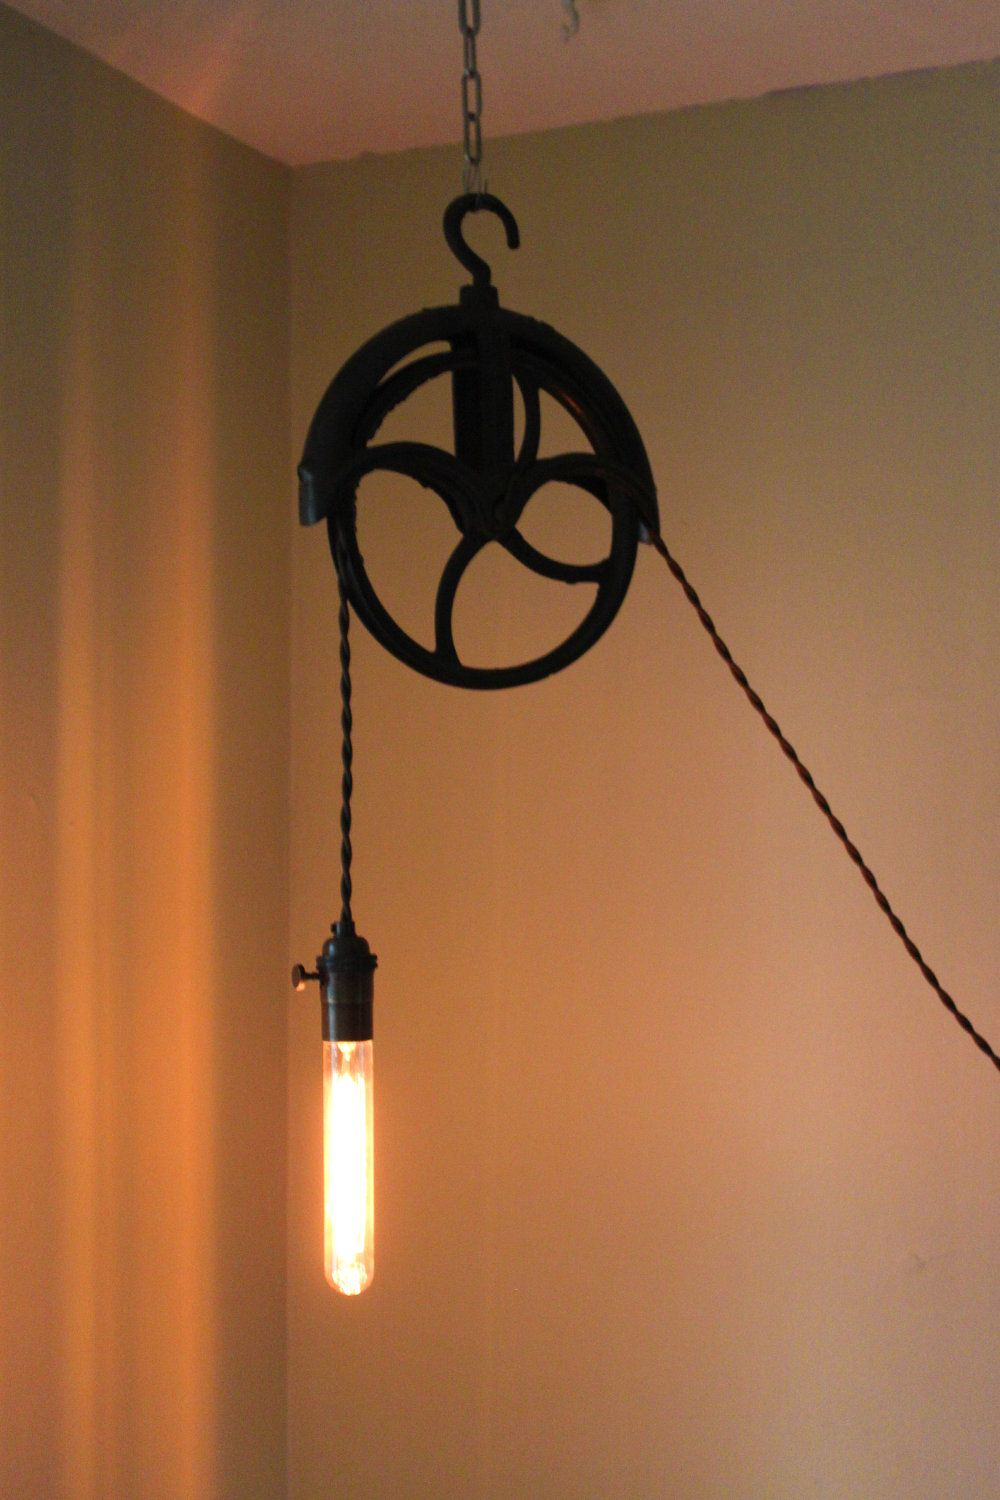 Antique Pulley Lamp By Pgpostals On Etsy Pulley Lamps Pulley Light Lamp